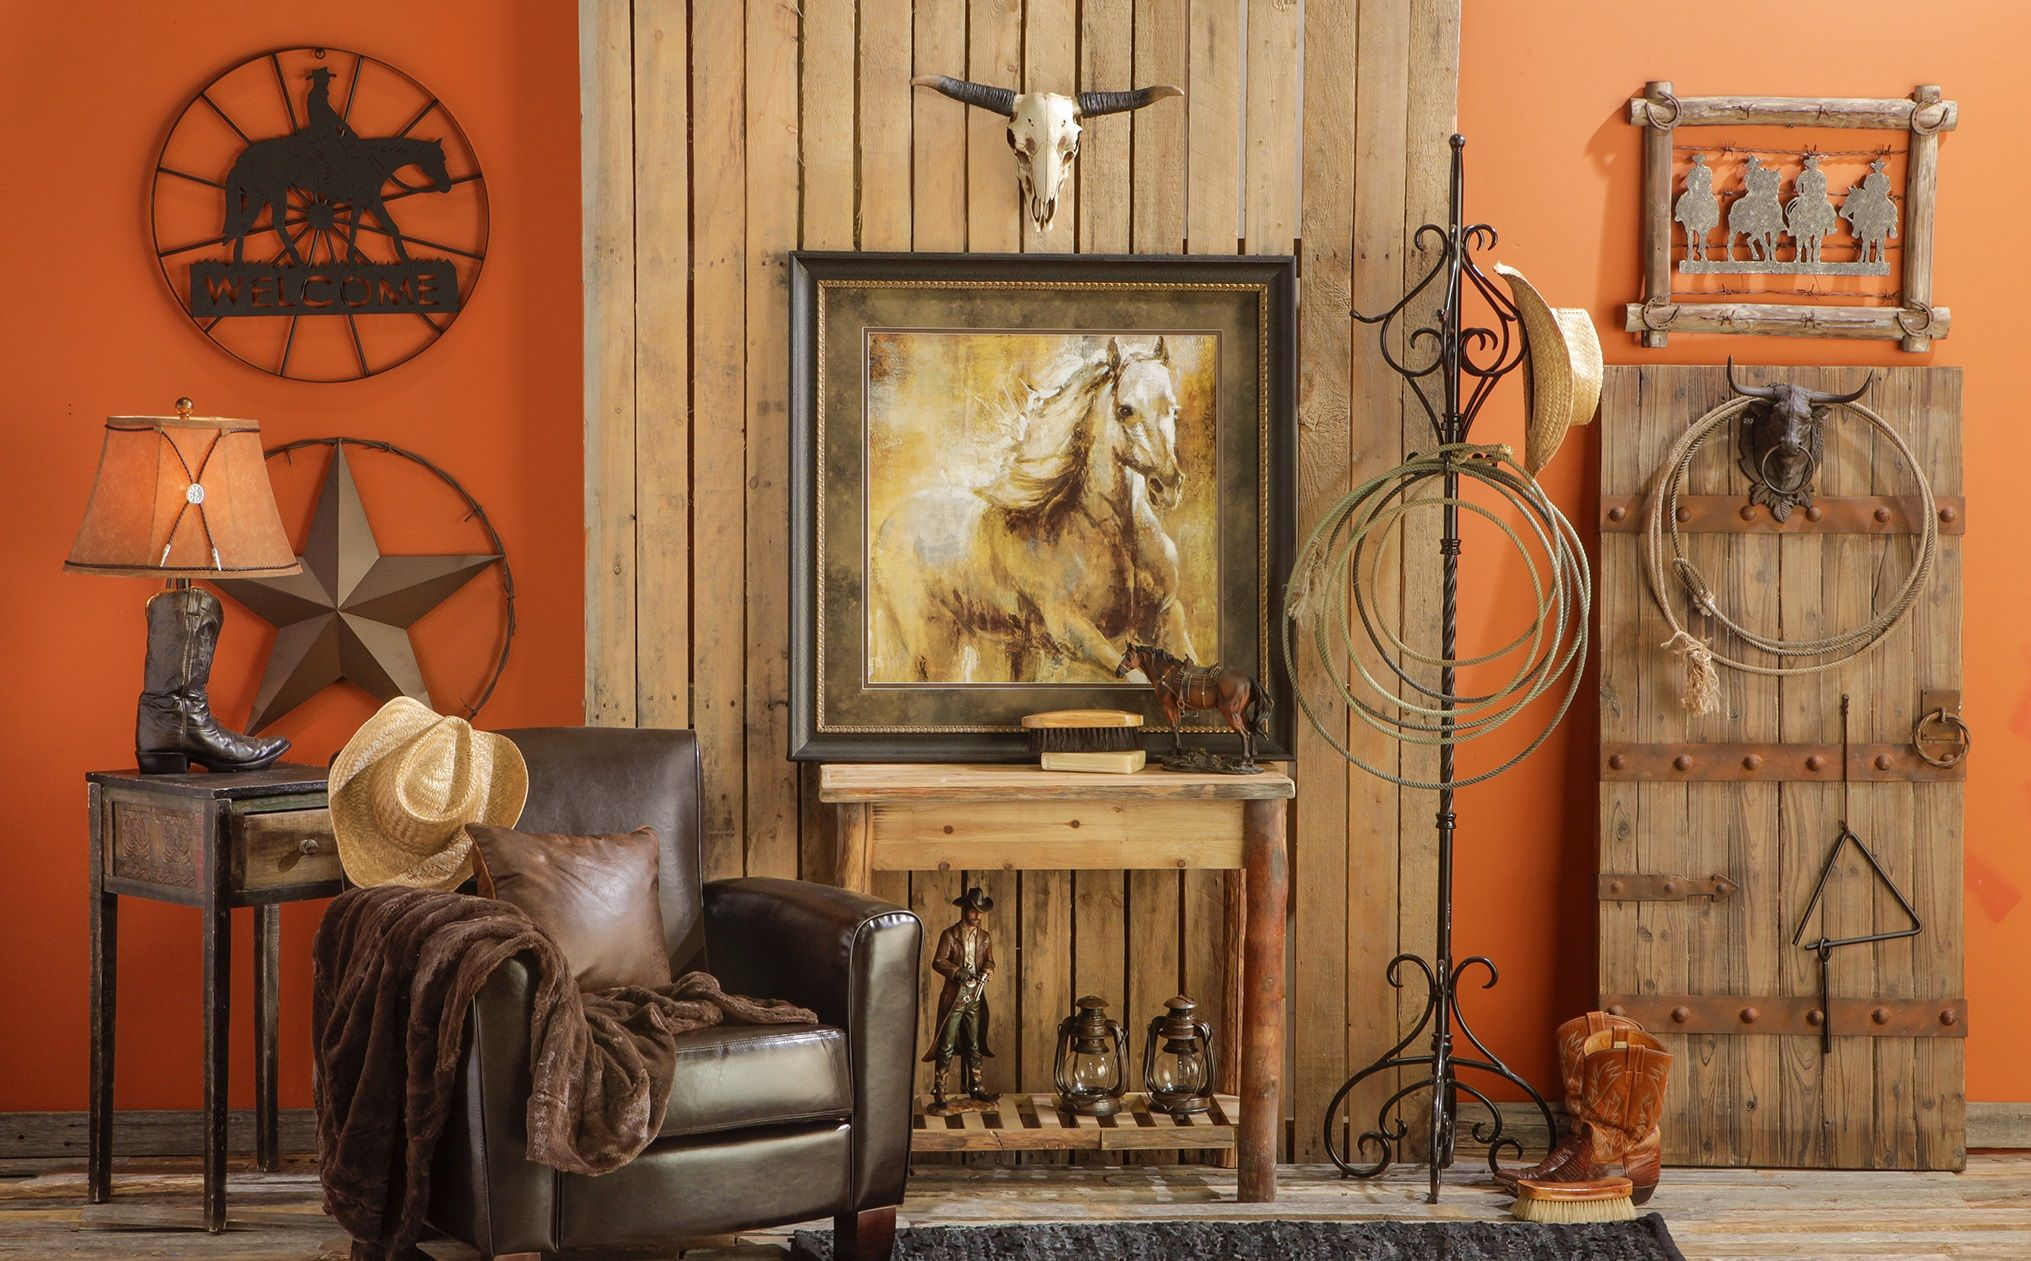 Rustic Old Western Decor Decor Home Rustic Interior Homedecor House Insp Western Living Room Decor Western Living Rooms Western Decor #western #style #living #room